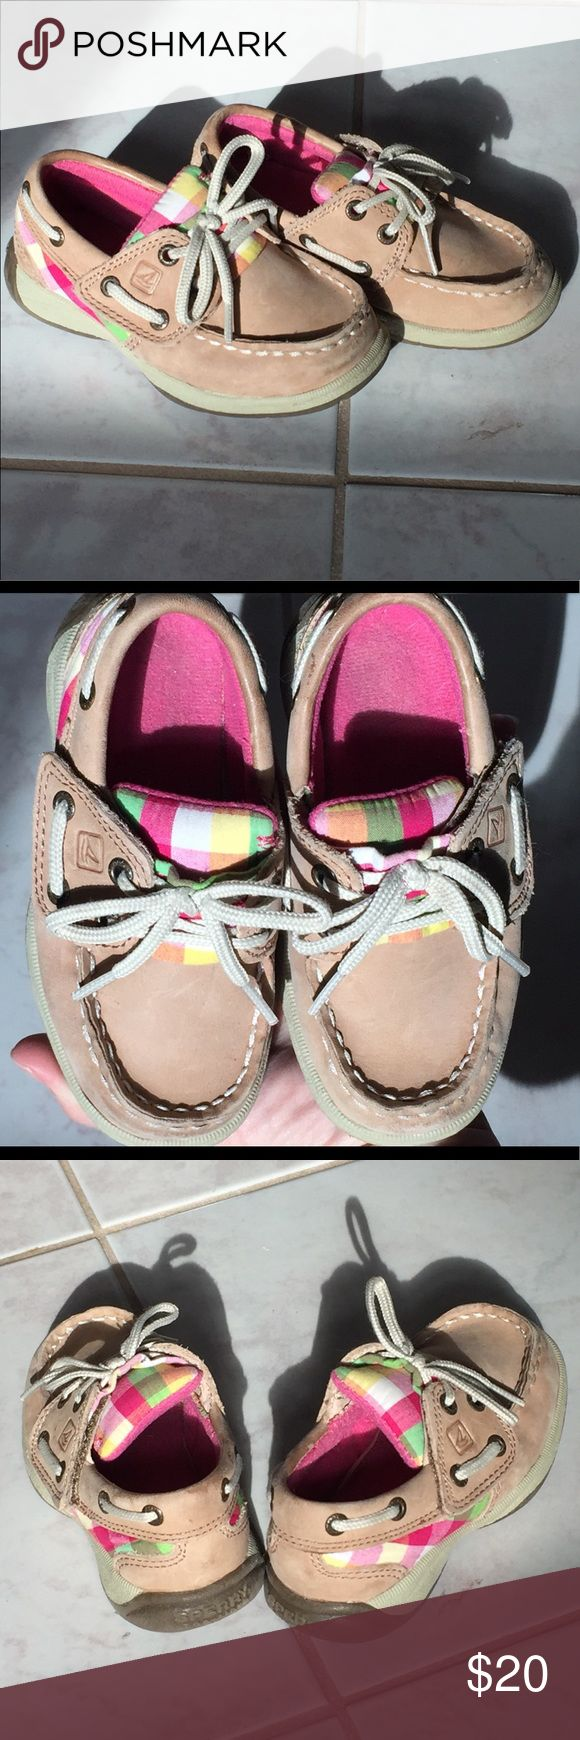 Toddler girl size 7 Sperry Topsiders dock shoes Preppy, fun and fresh. Size 7M Sperry Topsiders toddler girl dock shoes. Sophisticated accents like and adults' but kid-like pastel plaid placards, Velcro sides for easy on/off, and bright pink inside to match that plaid perfectly. Great used condition for a toddler's shoe- minimal scuffing on outside suede and minor wear on insoles. Accepting reasonable offers. Or bundle and save even more! Tan and plaid colors appear brighter in person…